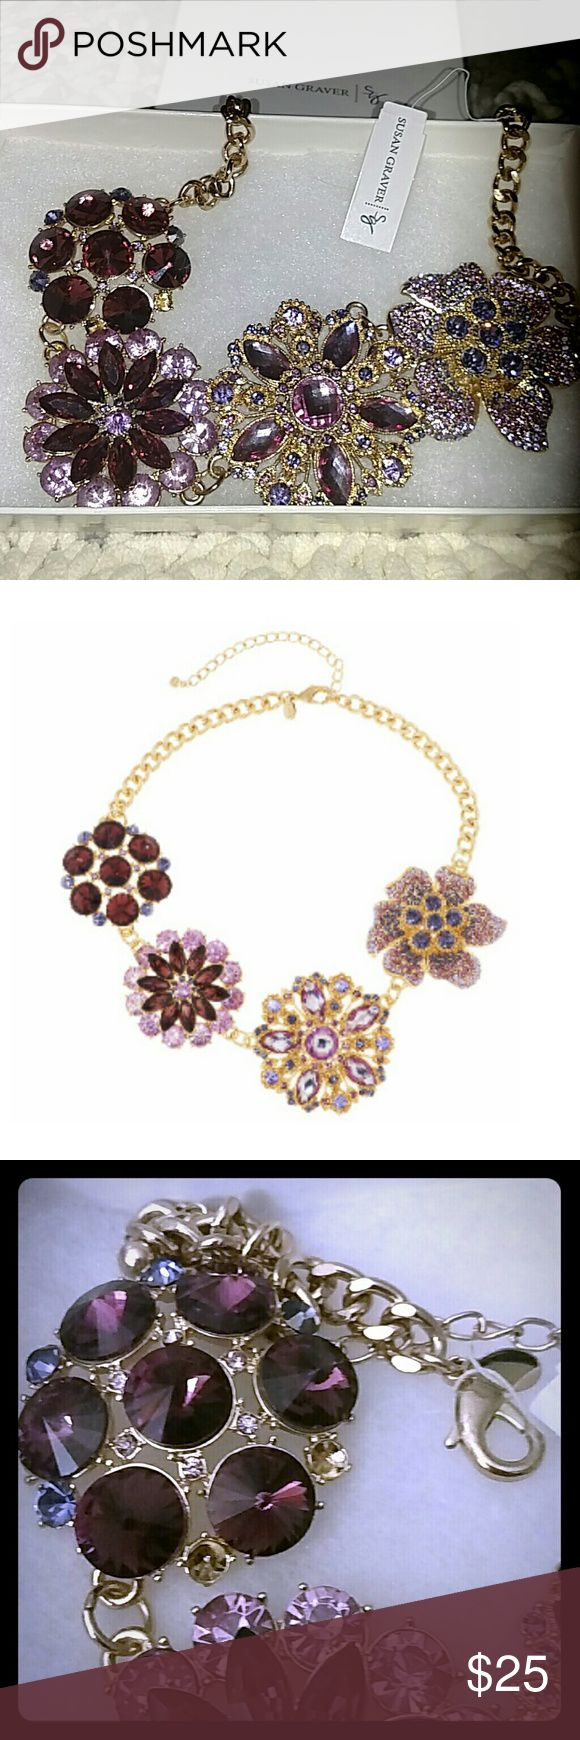 NWT Susan Graver statement necklace NWT gold and shades of purple statement necklace.  4 large flowers with lots of sparkle. 2 gem stones are missing (see picture number 3).  Priced accordingly.  Great deal. Susan Graver Jewelry Necklaces